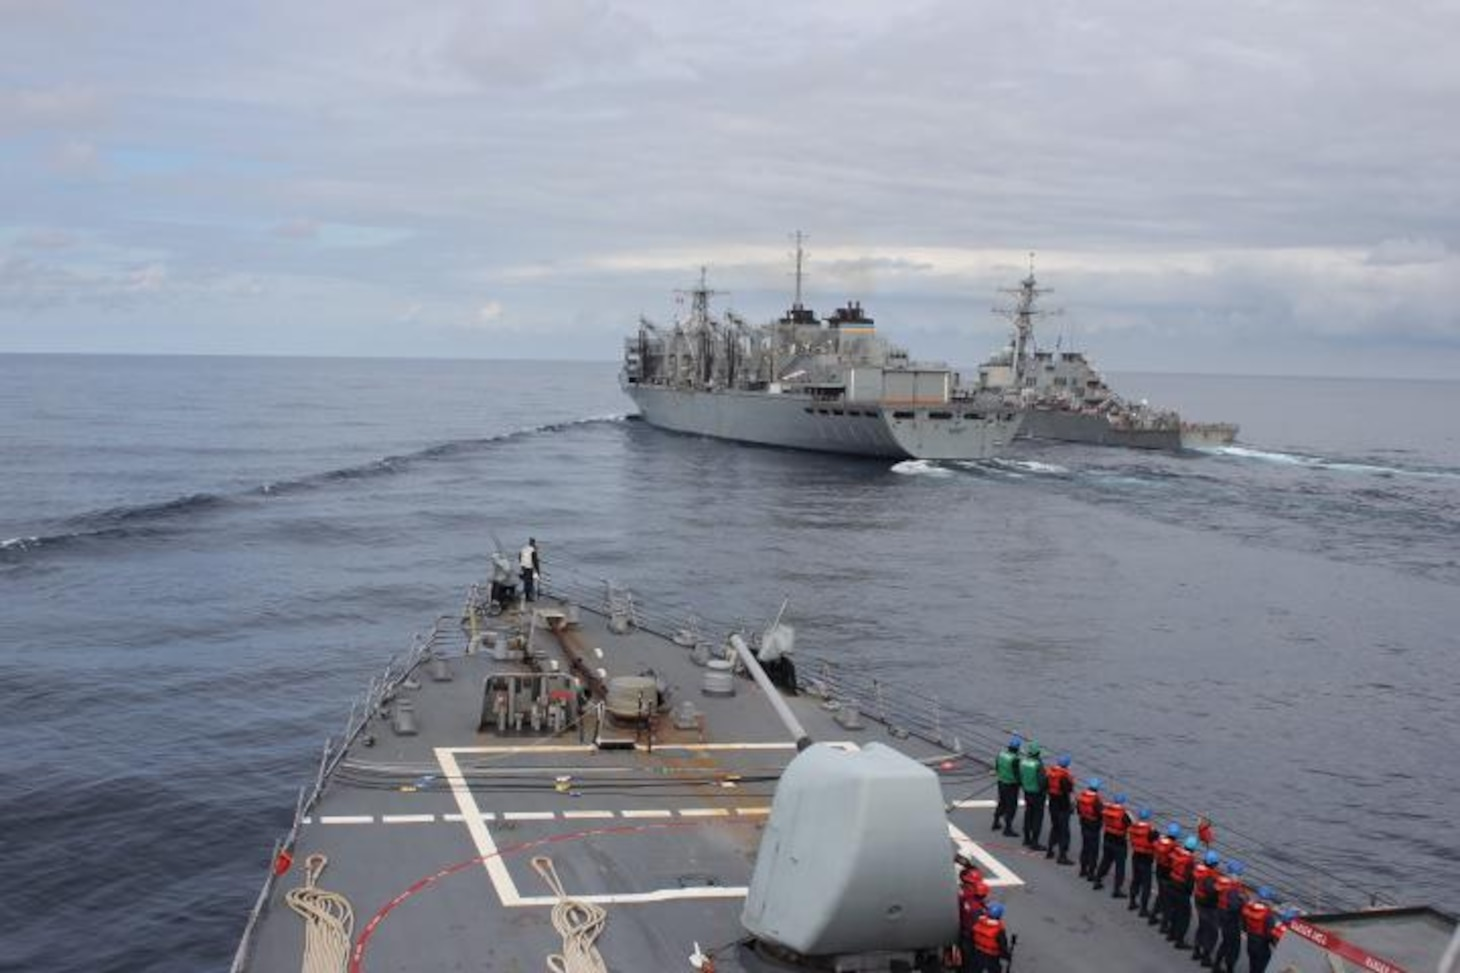 NORTH ATLANTIC (April 28, 2020) - The Arleigh Burke-class guided-missile destroyer USS Donald Cook (DDG 75) makes her approach alongside USNS SUPPLY (T-AOE 6) and USS Porter (DDG 78) for a connected replenishment (CONREP) to receive fuel and stores, April 28, 2020. CNE-CAN/C6F, headquartered in Naples, Italy, oversees joint and naval operations, often in concert with Allied, joint, and interagency partners, in order to advance U.S. national interests and security and stability in Europe and Africa. (U.S. Navy photo by Yeoman Third Class Anthony Nichols/Released)